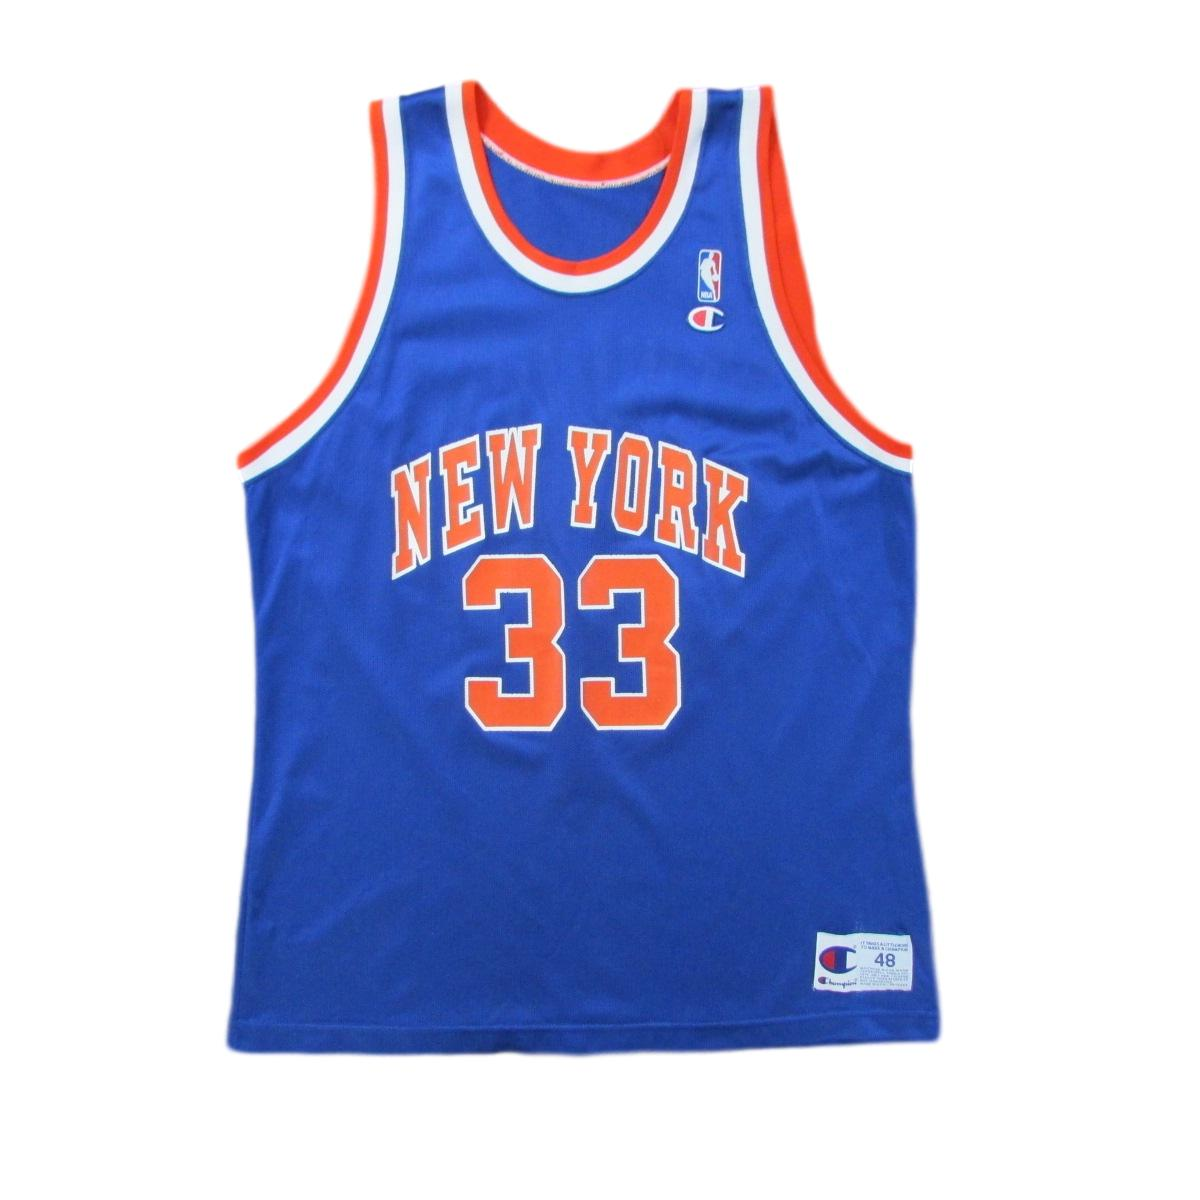 New York Knicks Patrick Ewing Basketball Champion Jersey Sz 48